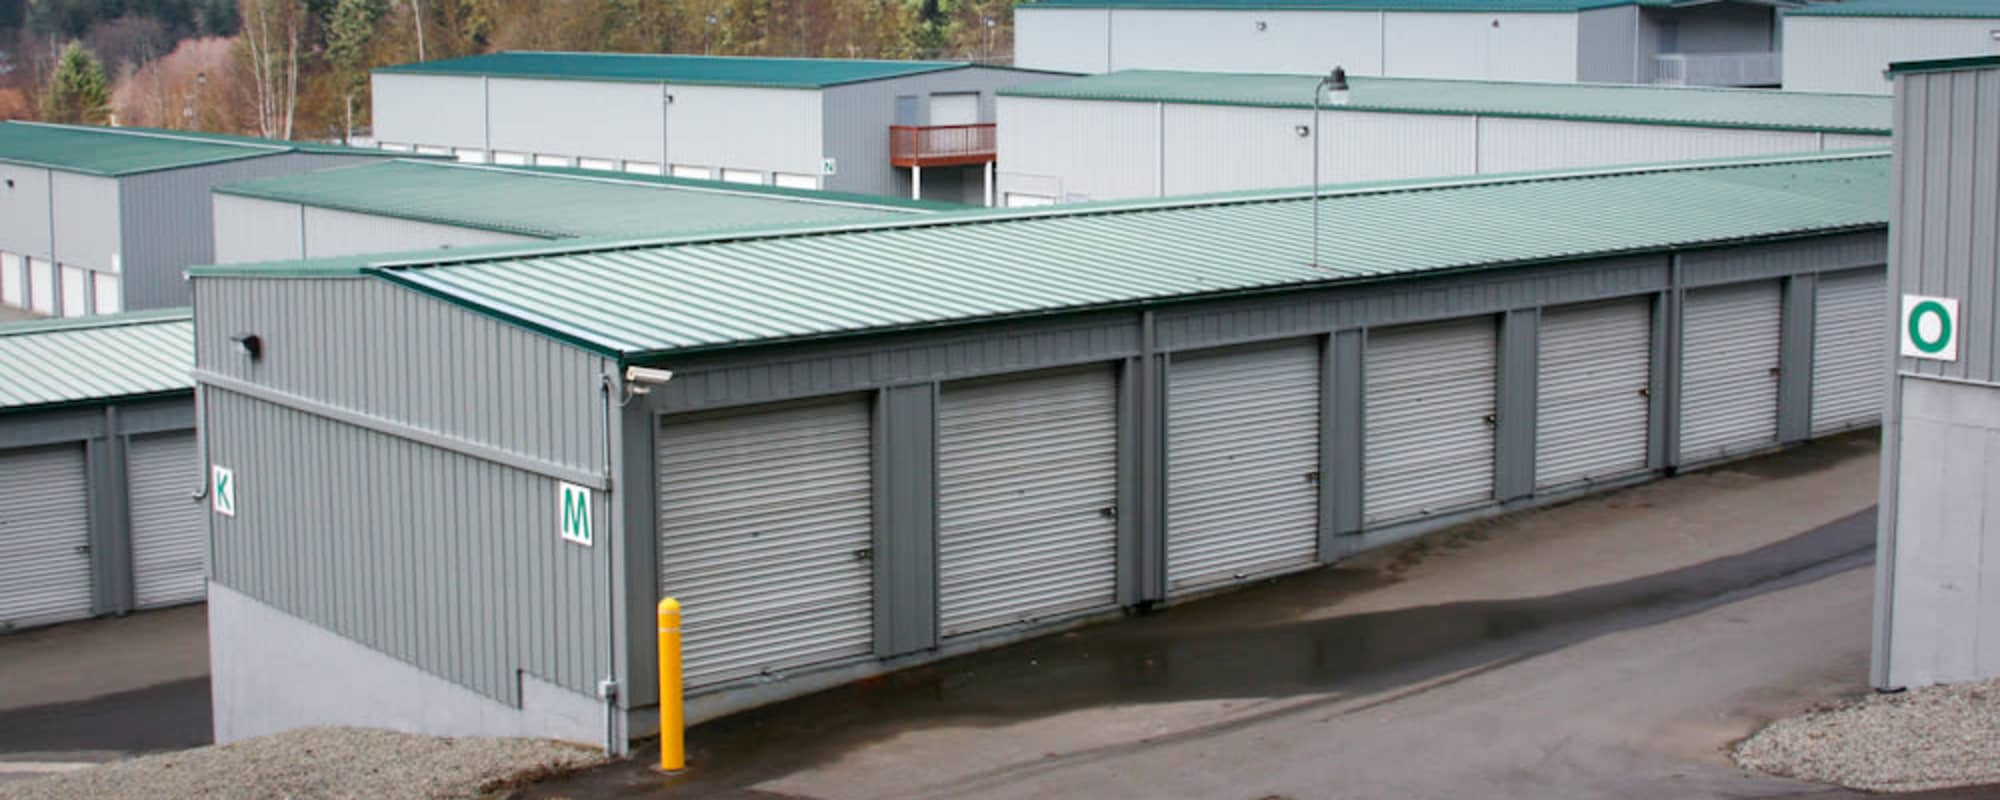 Self storage in Poulsbo WA